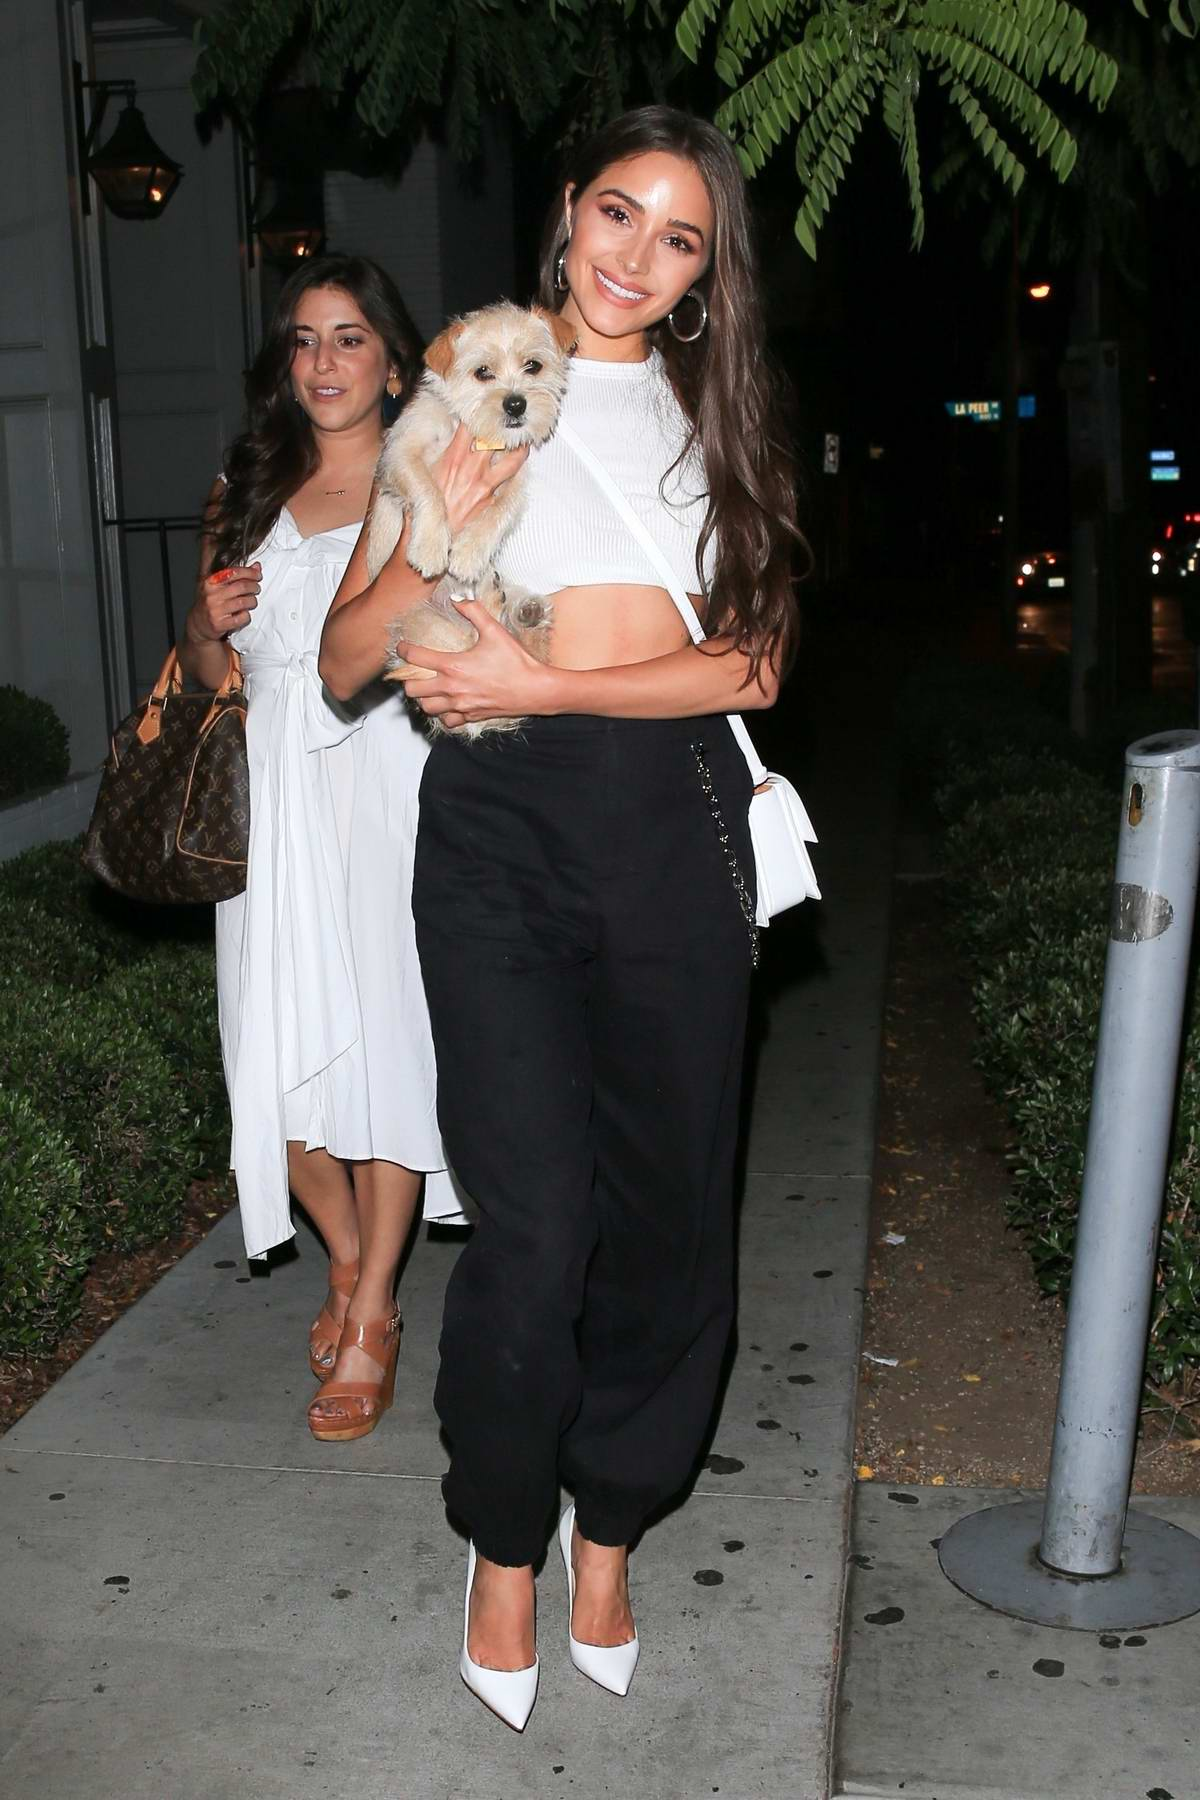 Olivia Culpo poses with her pup after grabbing dinner at Gracias Madre in West Hollywood, Los Angeles